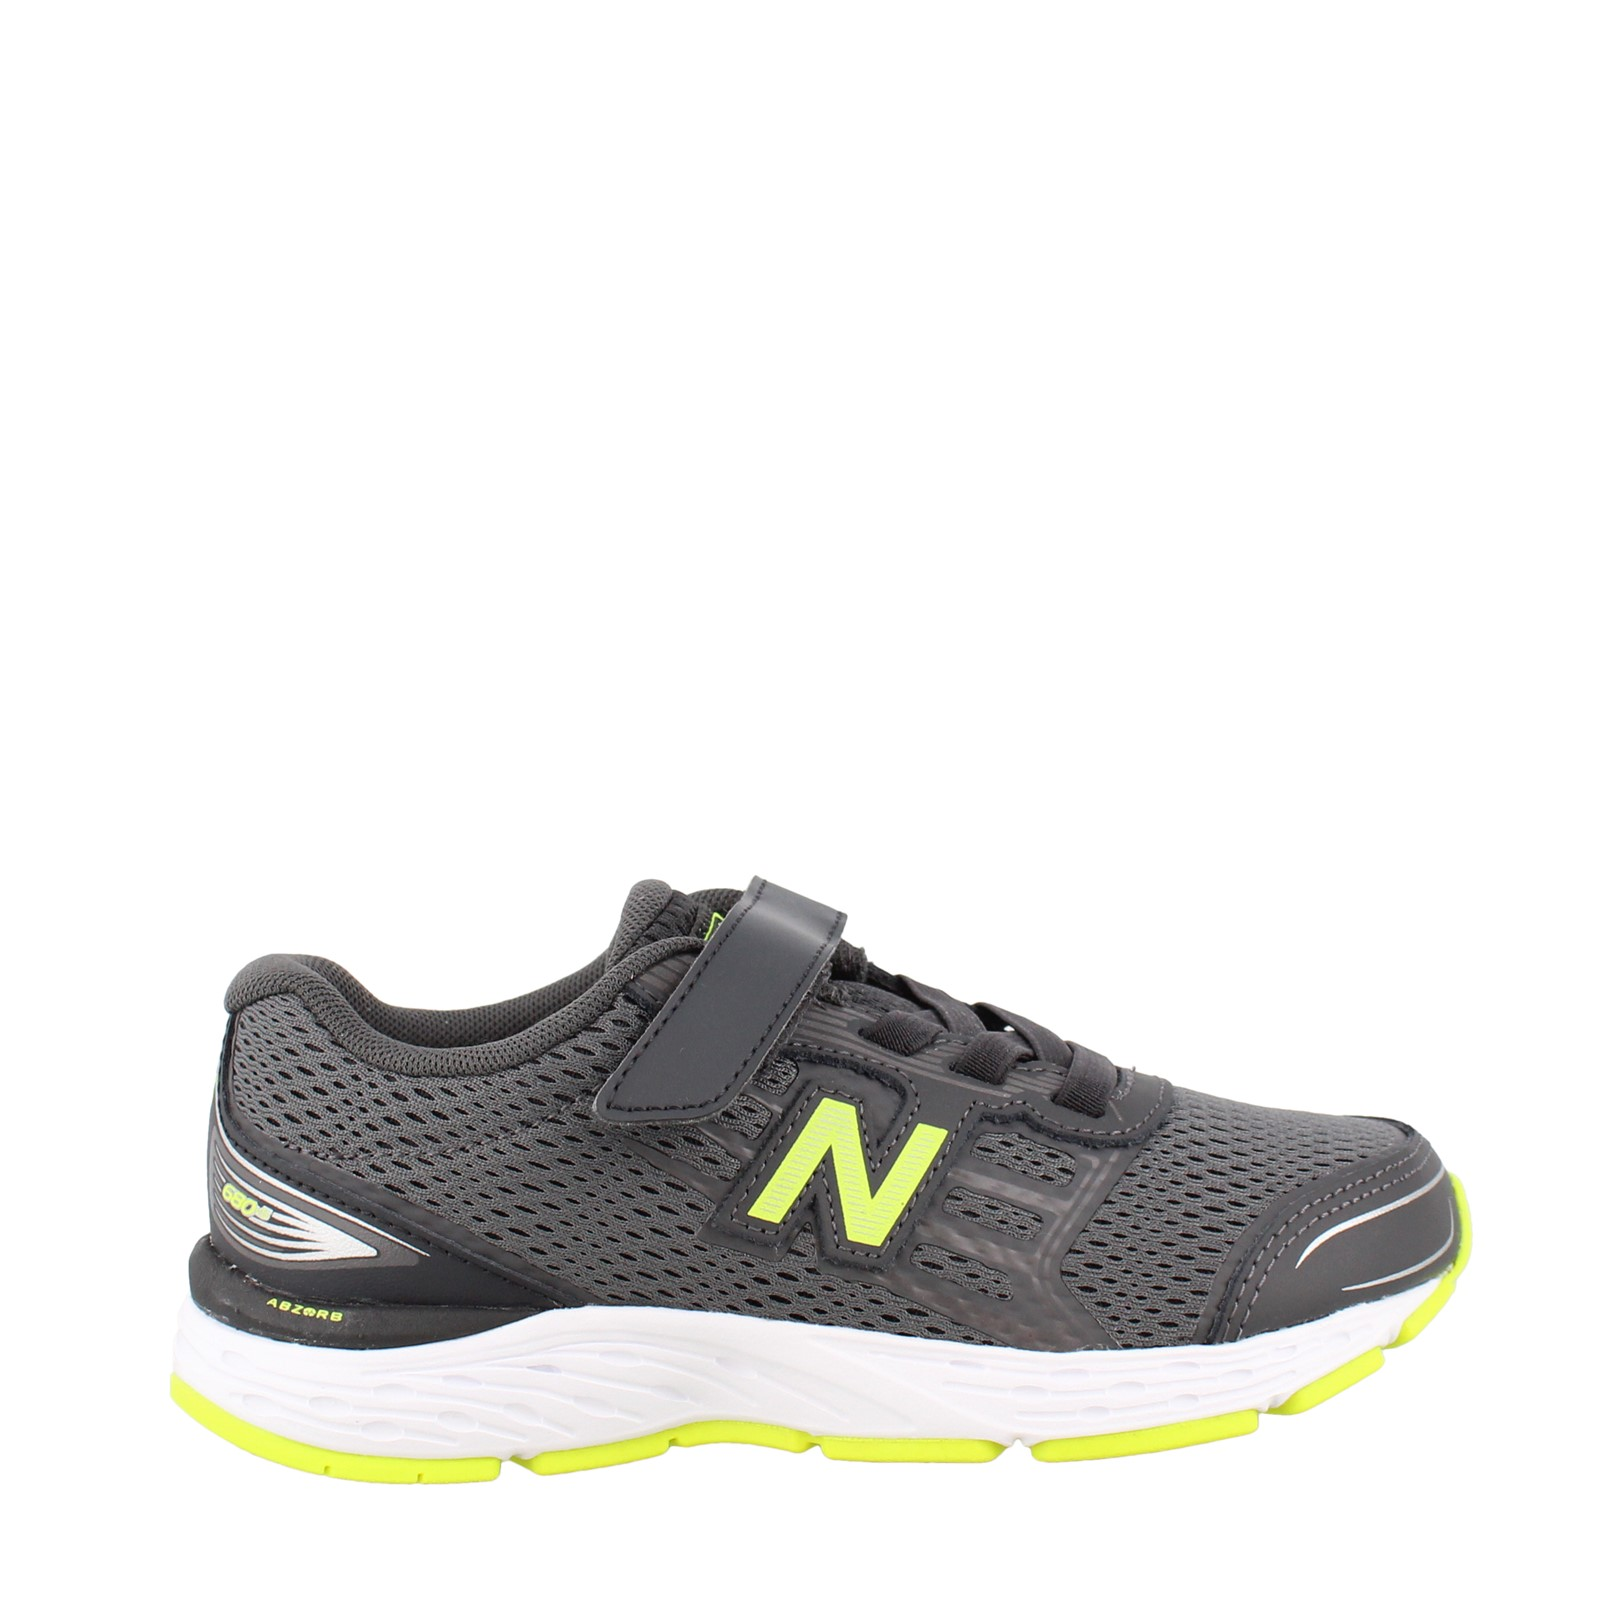 Boy's New Balance, 680 Athletic Sneaker